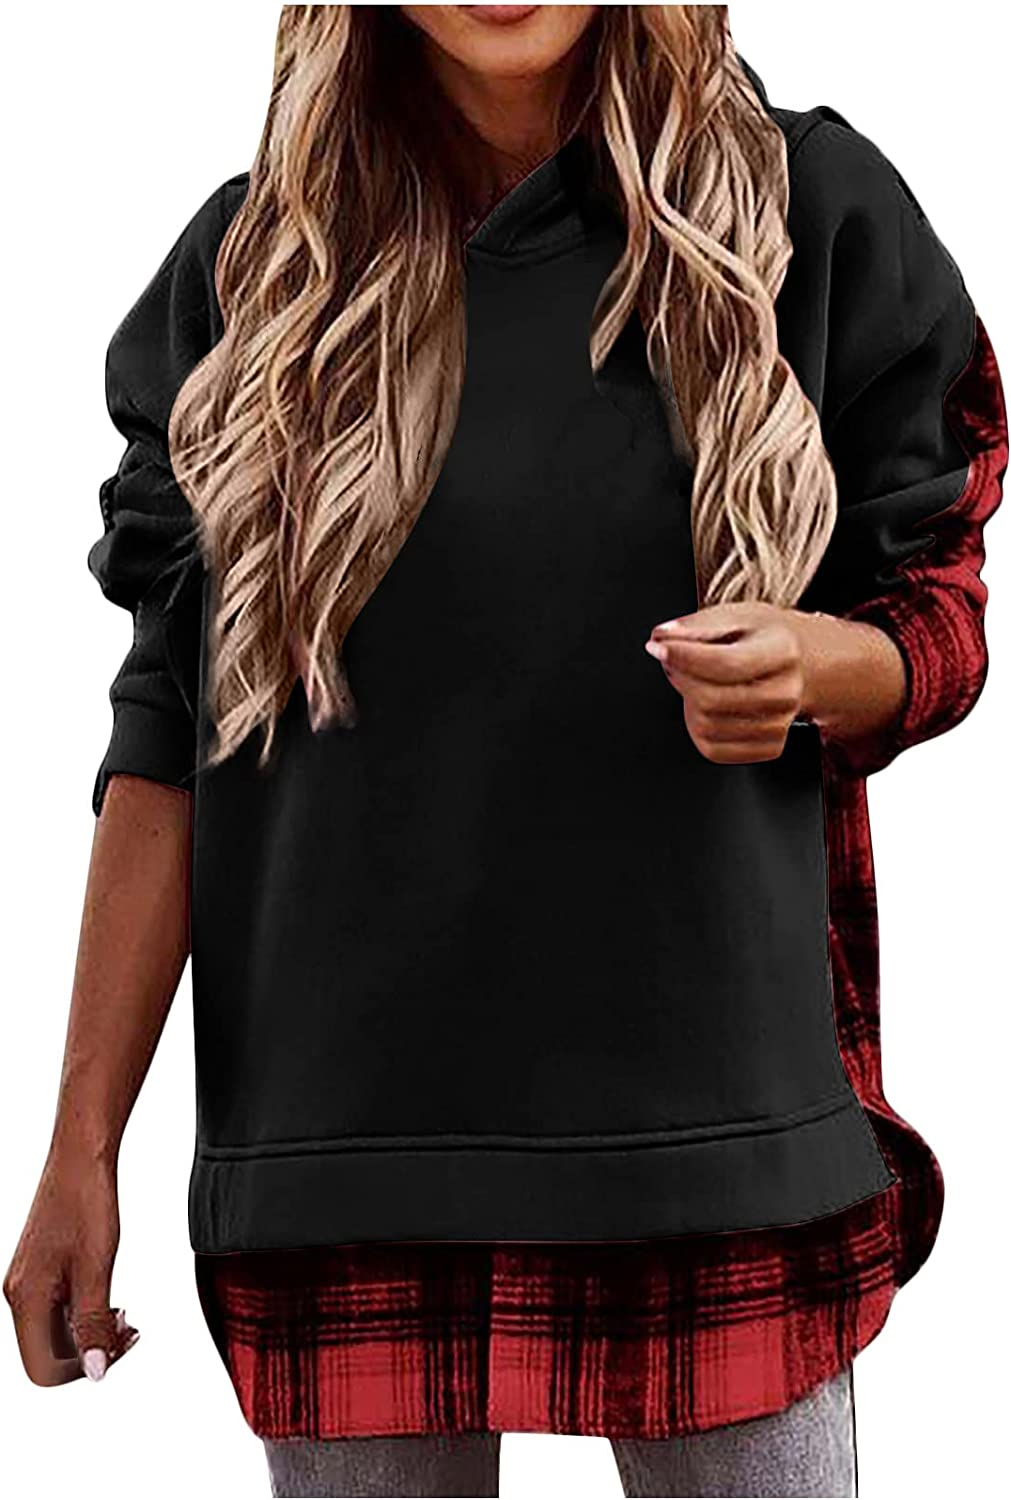 Kanzd Hoodies Manufacturer regenerated product Sweatshirts 55% OFF for Women Plaid Sleeve Fall Long Patch